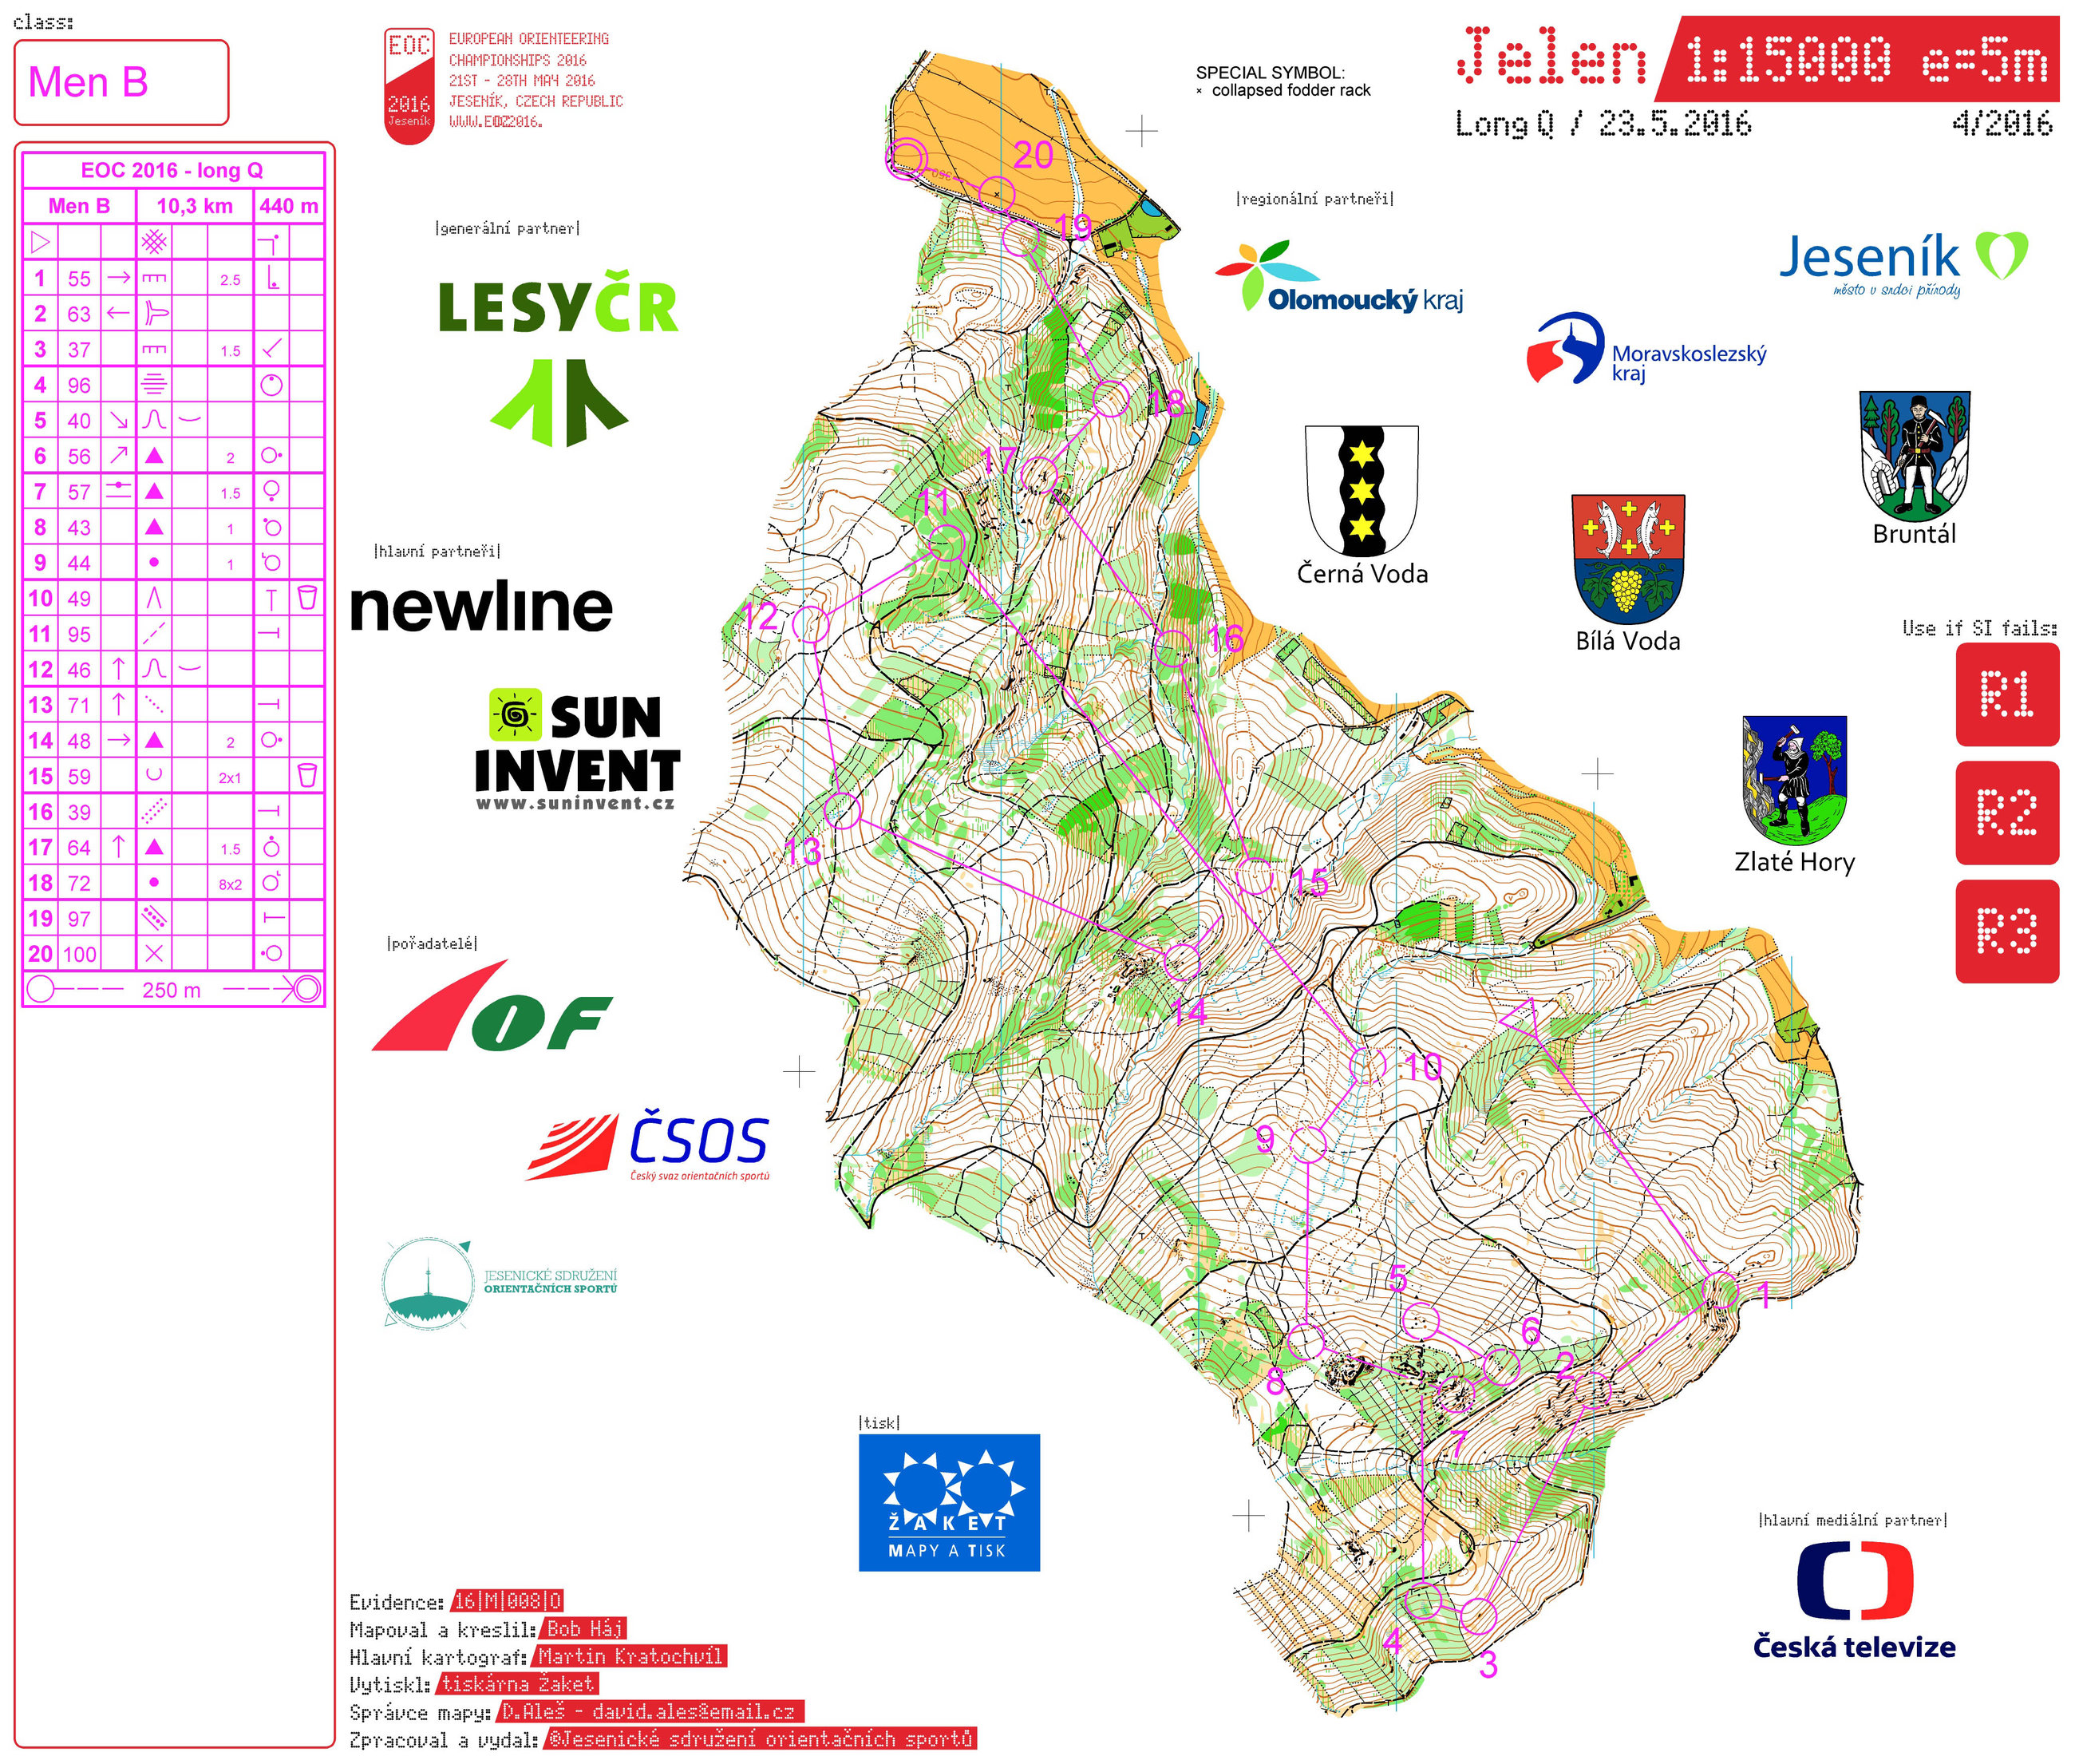 EOC 2016 Long Qual: Maps and Results | World of O News